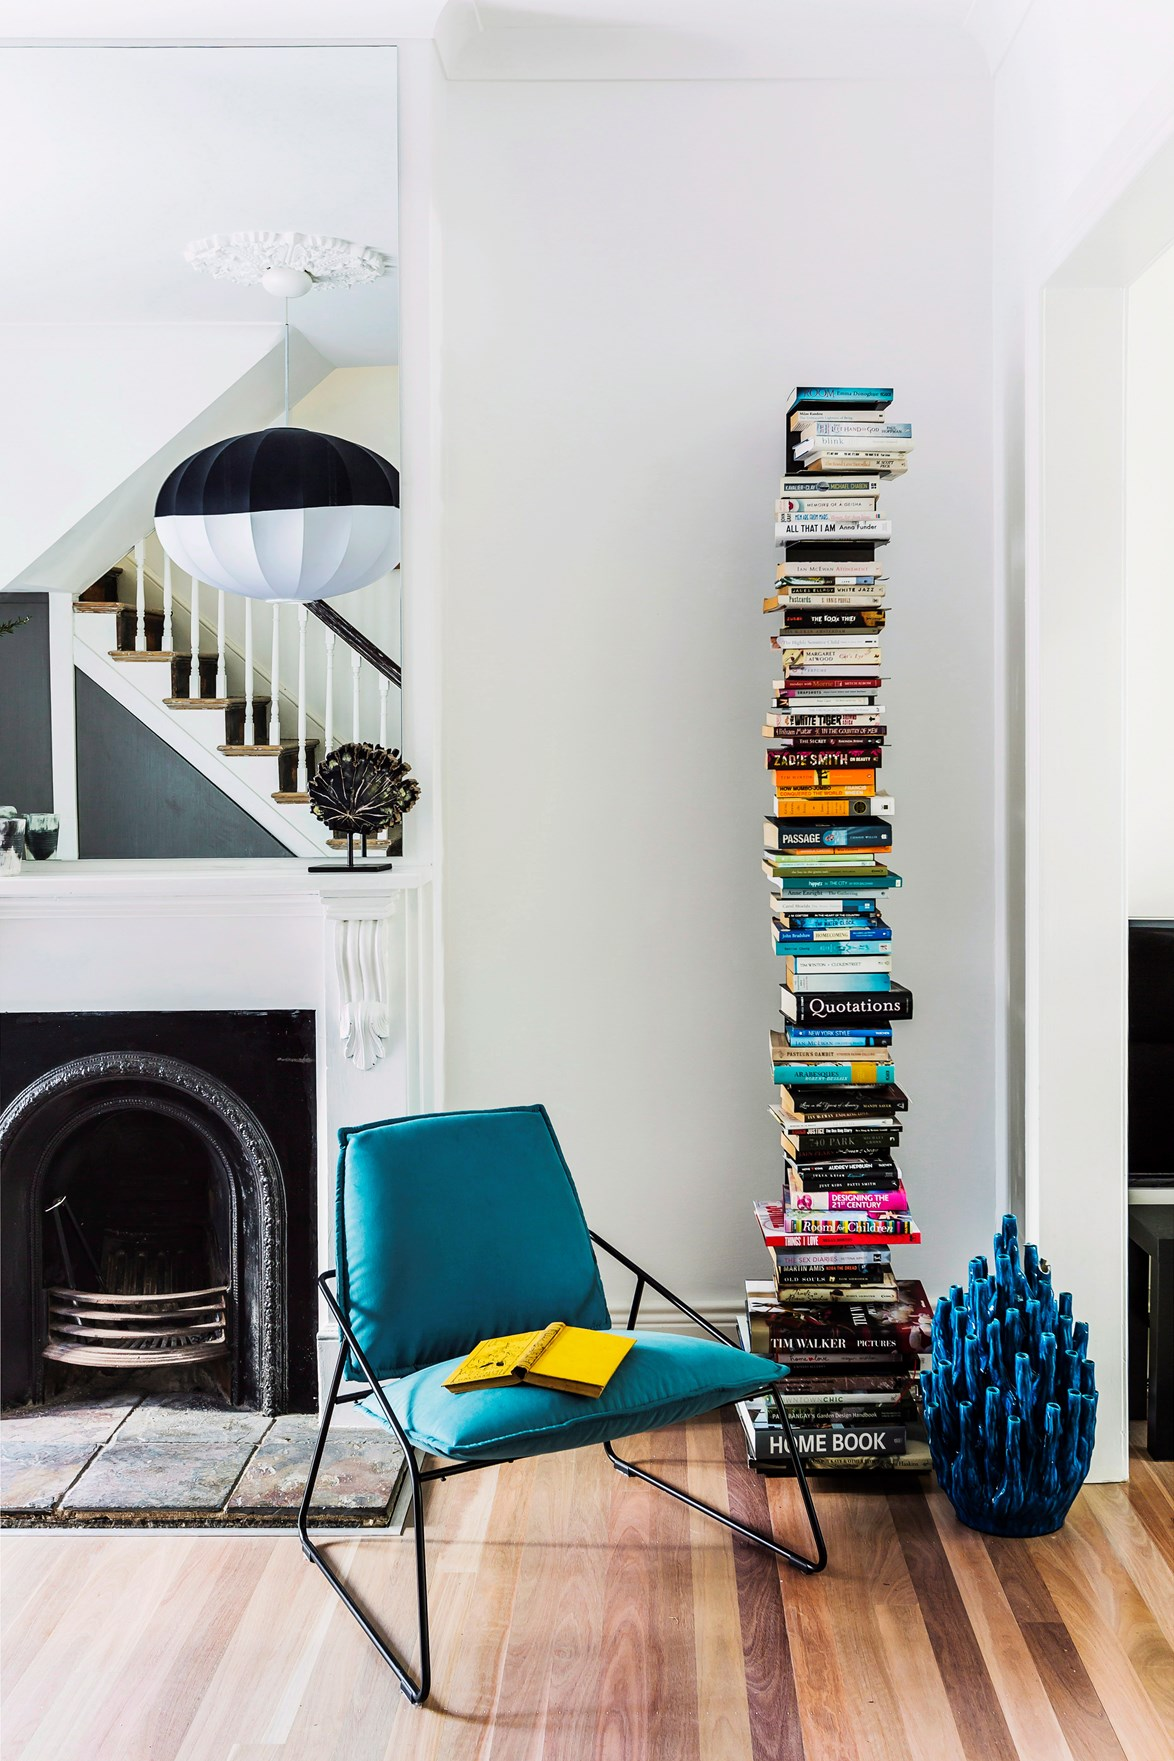 Sometimes, when storage space is a problem, the only way to go is up. This striking vertical bookshelf keeps your books in order while making a style statement. *Photo:* Maree Homer / *bauersyndication.com.au*